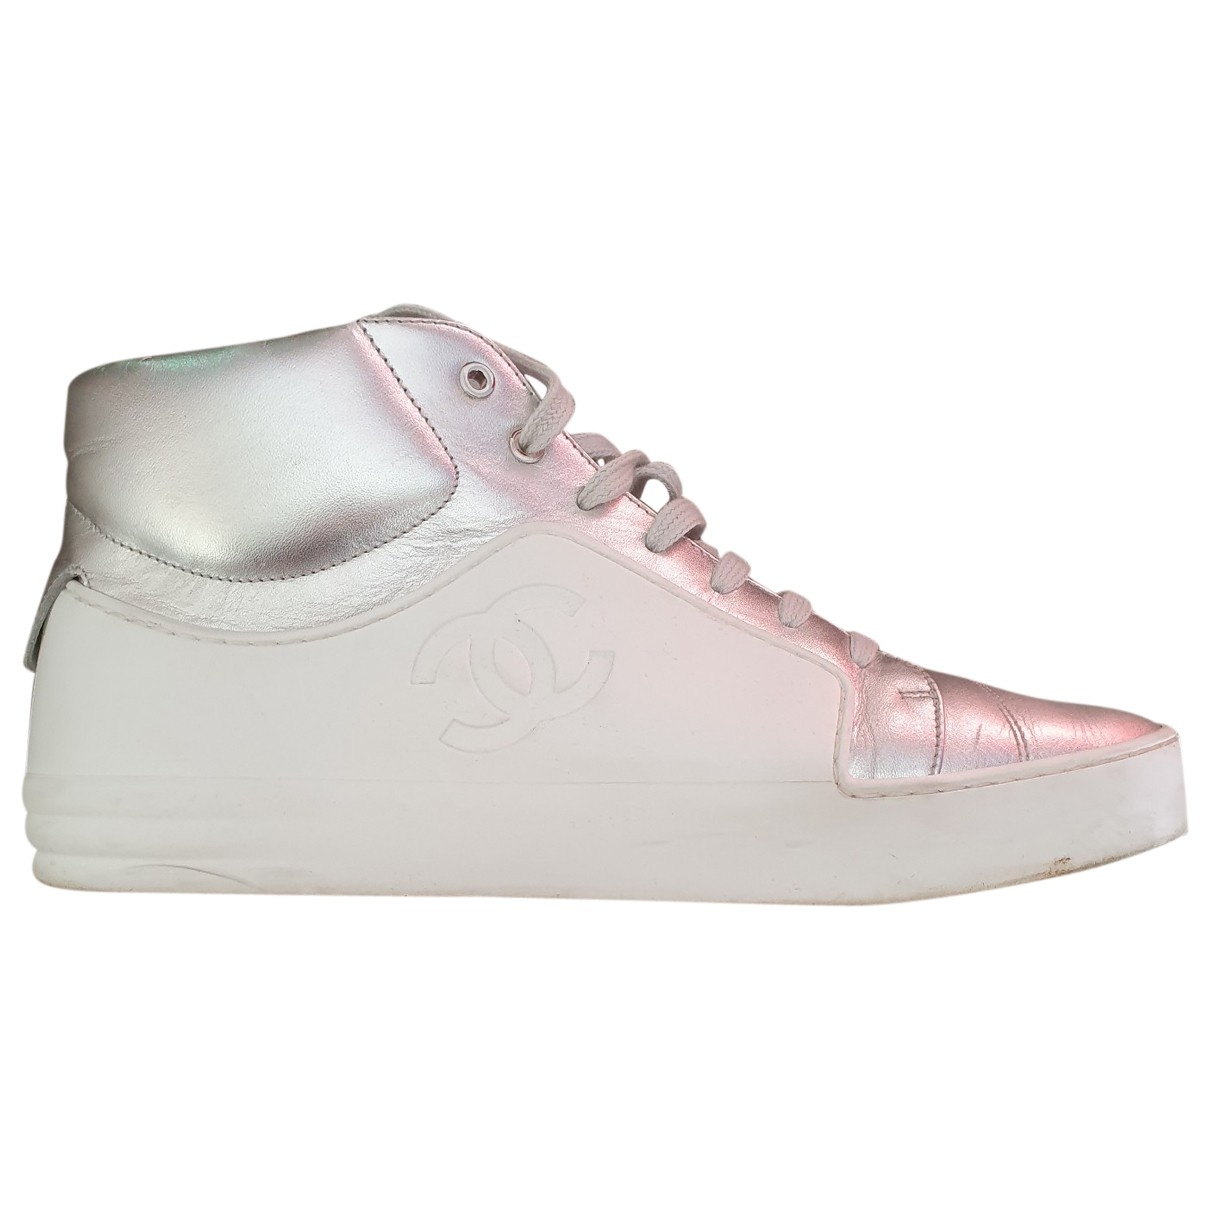 Chanel \N Silver Leather Trainers for Women 38 EU